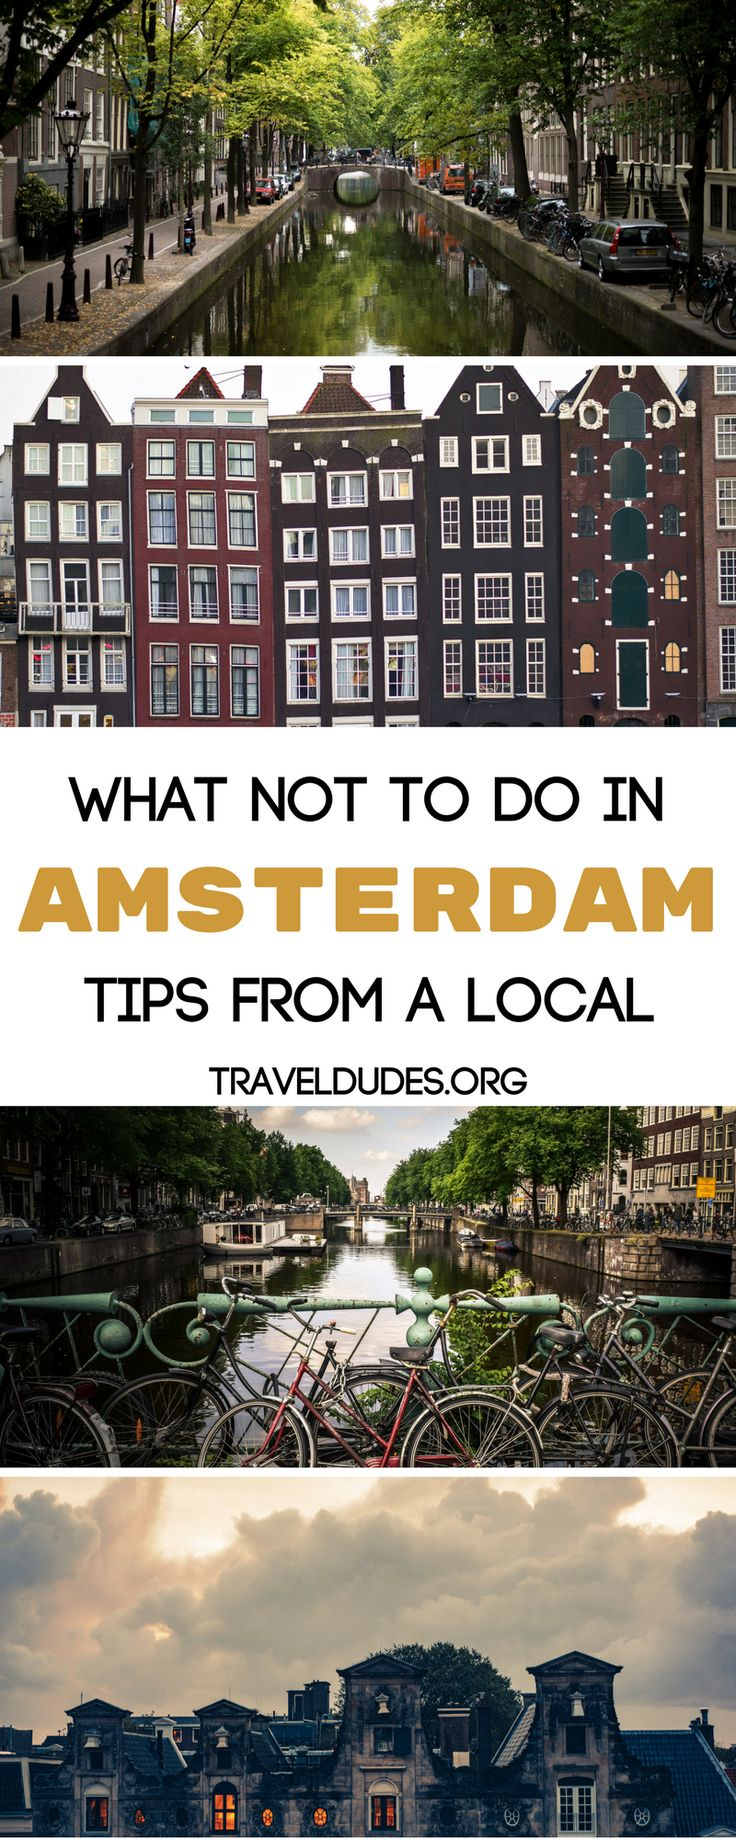 How to be a great tourist when you travel to Amsterdam. Stay safe and avoid the bikes, utilizing public transportation instead. Don't assume we speak German and use English when trying to communicate. Practice these tips to be the best possible visitor to our city. Practical tips for travel in the Netherlands. | Travel Dudes Travel Community #Amsterdam